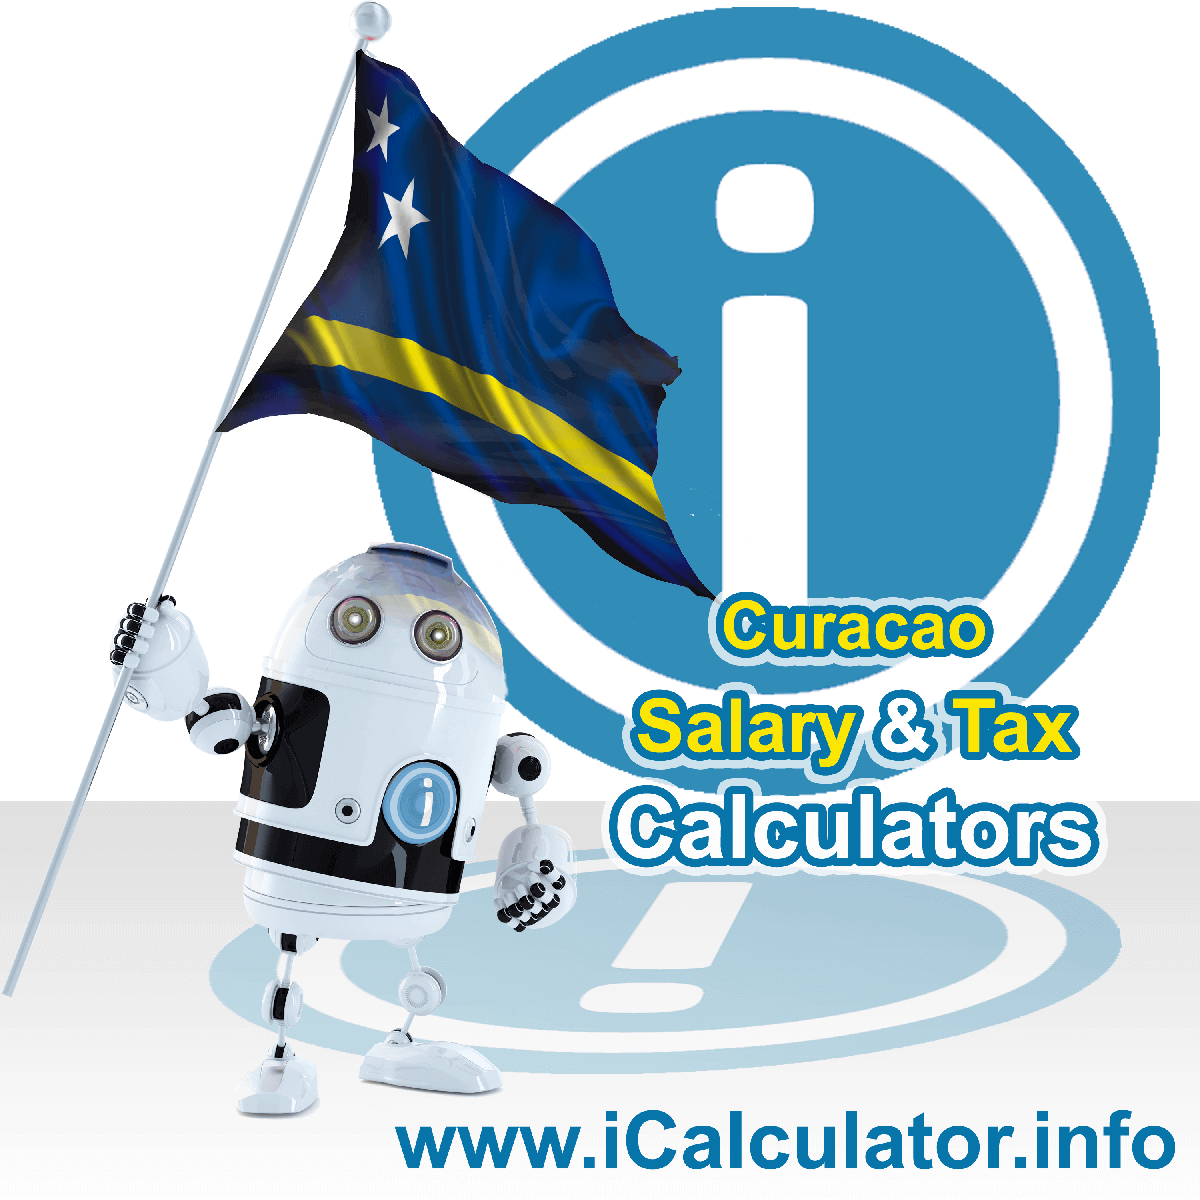 Curacao Salary Calculator. This image shows the Curacaoese flag and information relating to the tax formula for the Curacao Tax Calculator